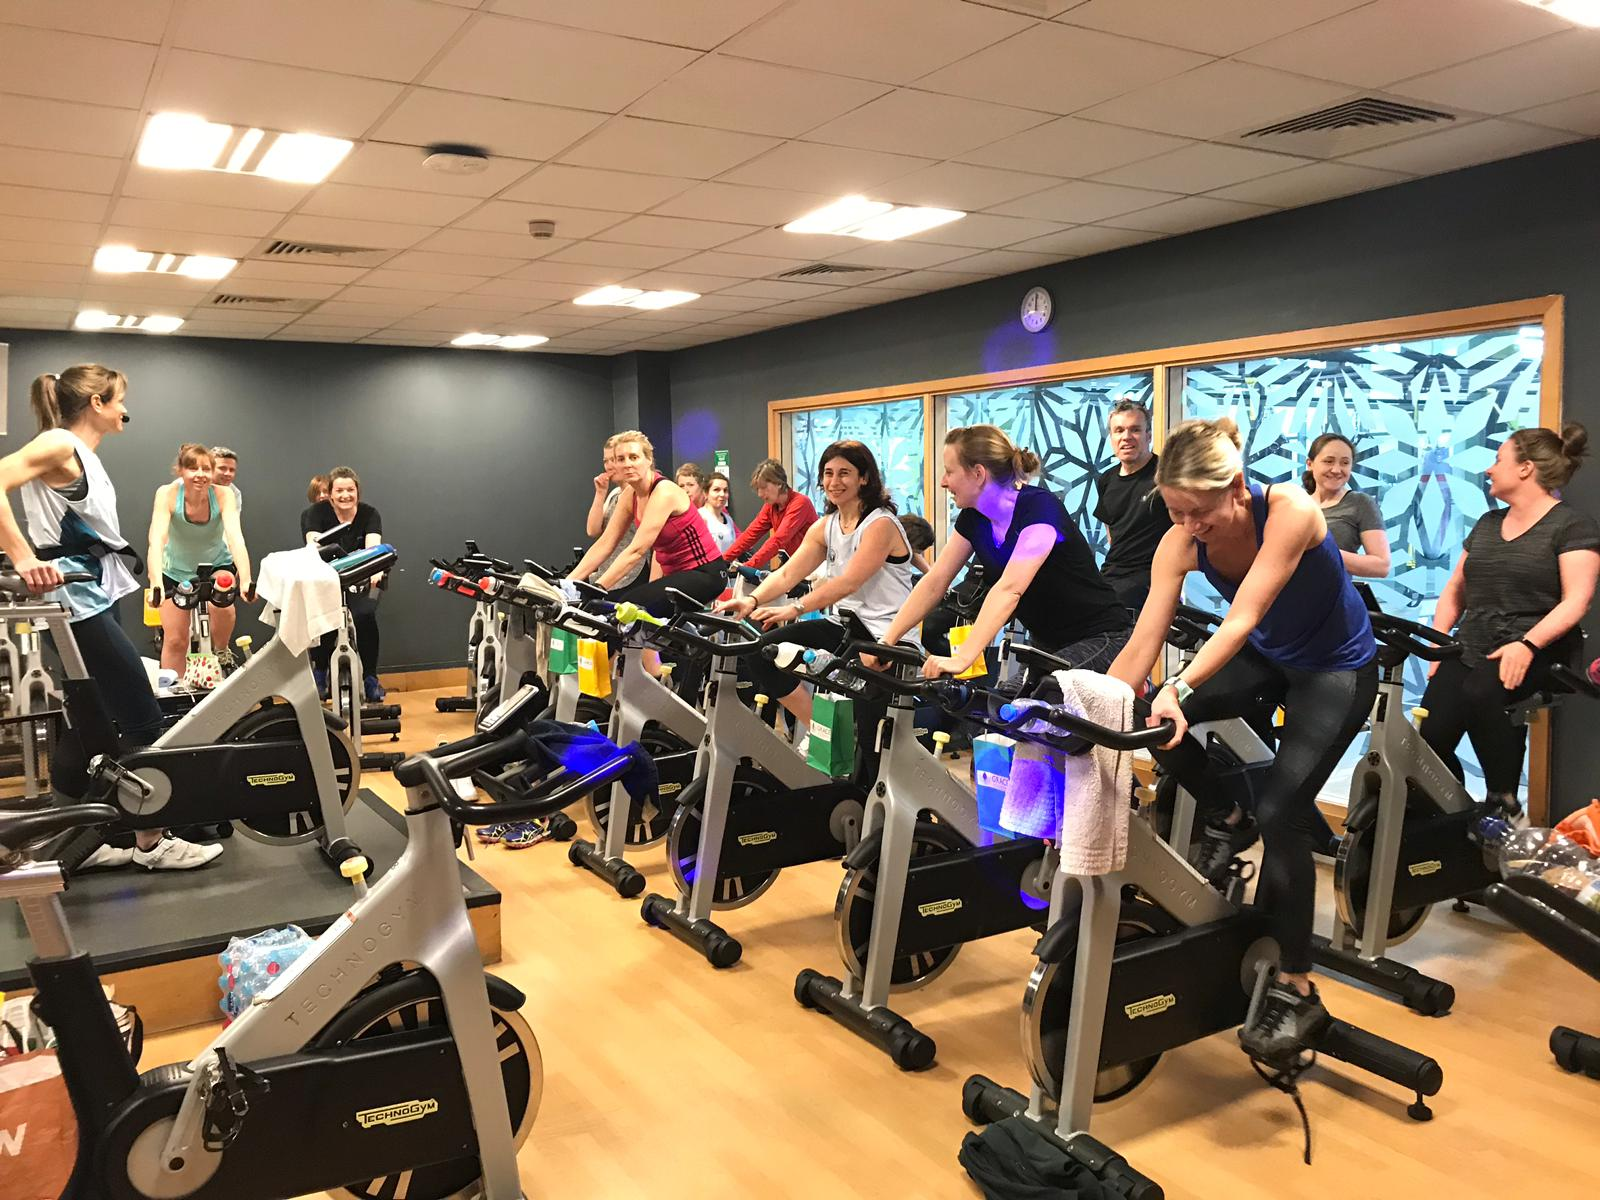 Group taking part in spinning event at Nuffield Health in Sunbury for GRACE